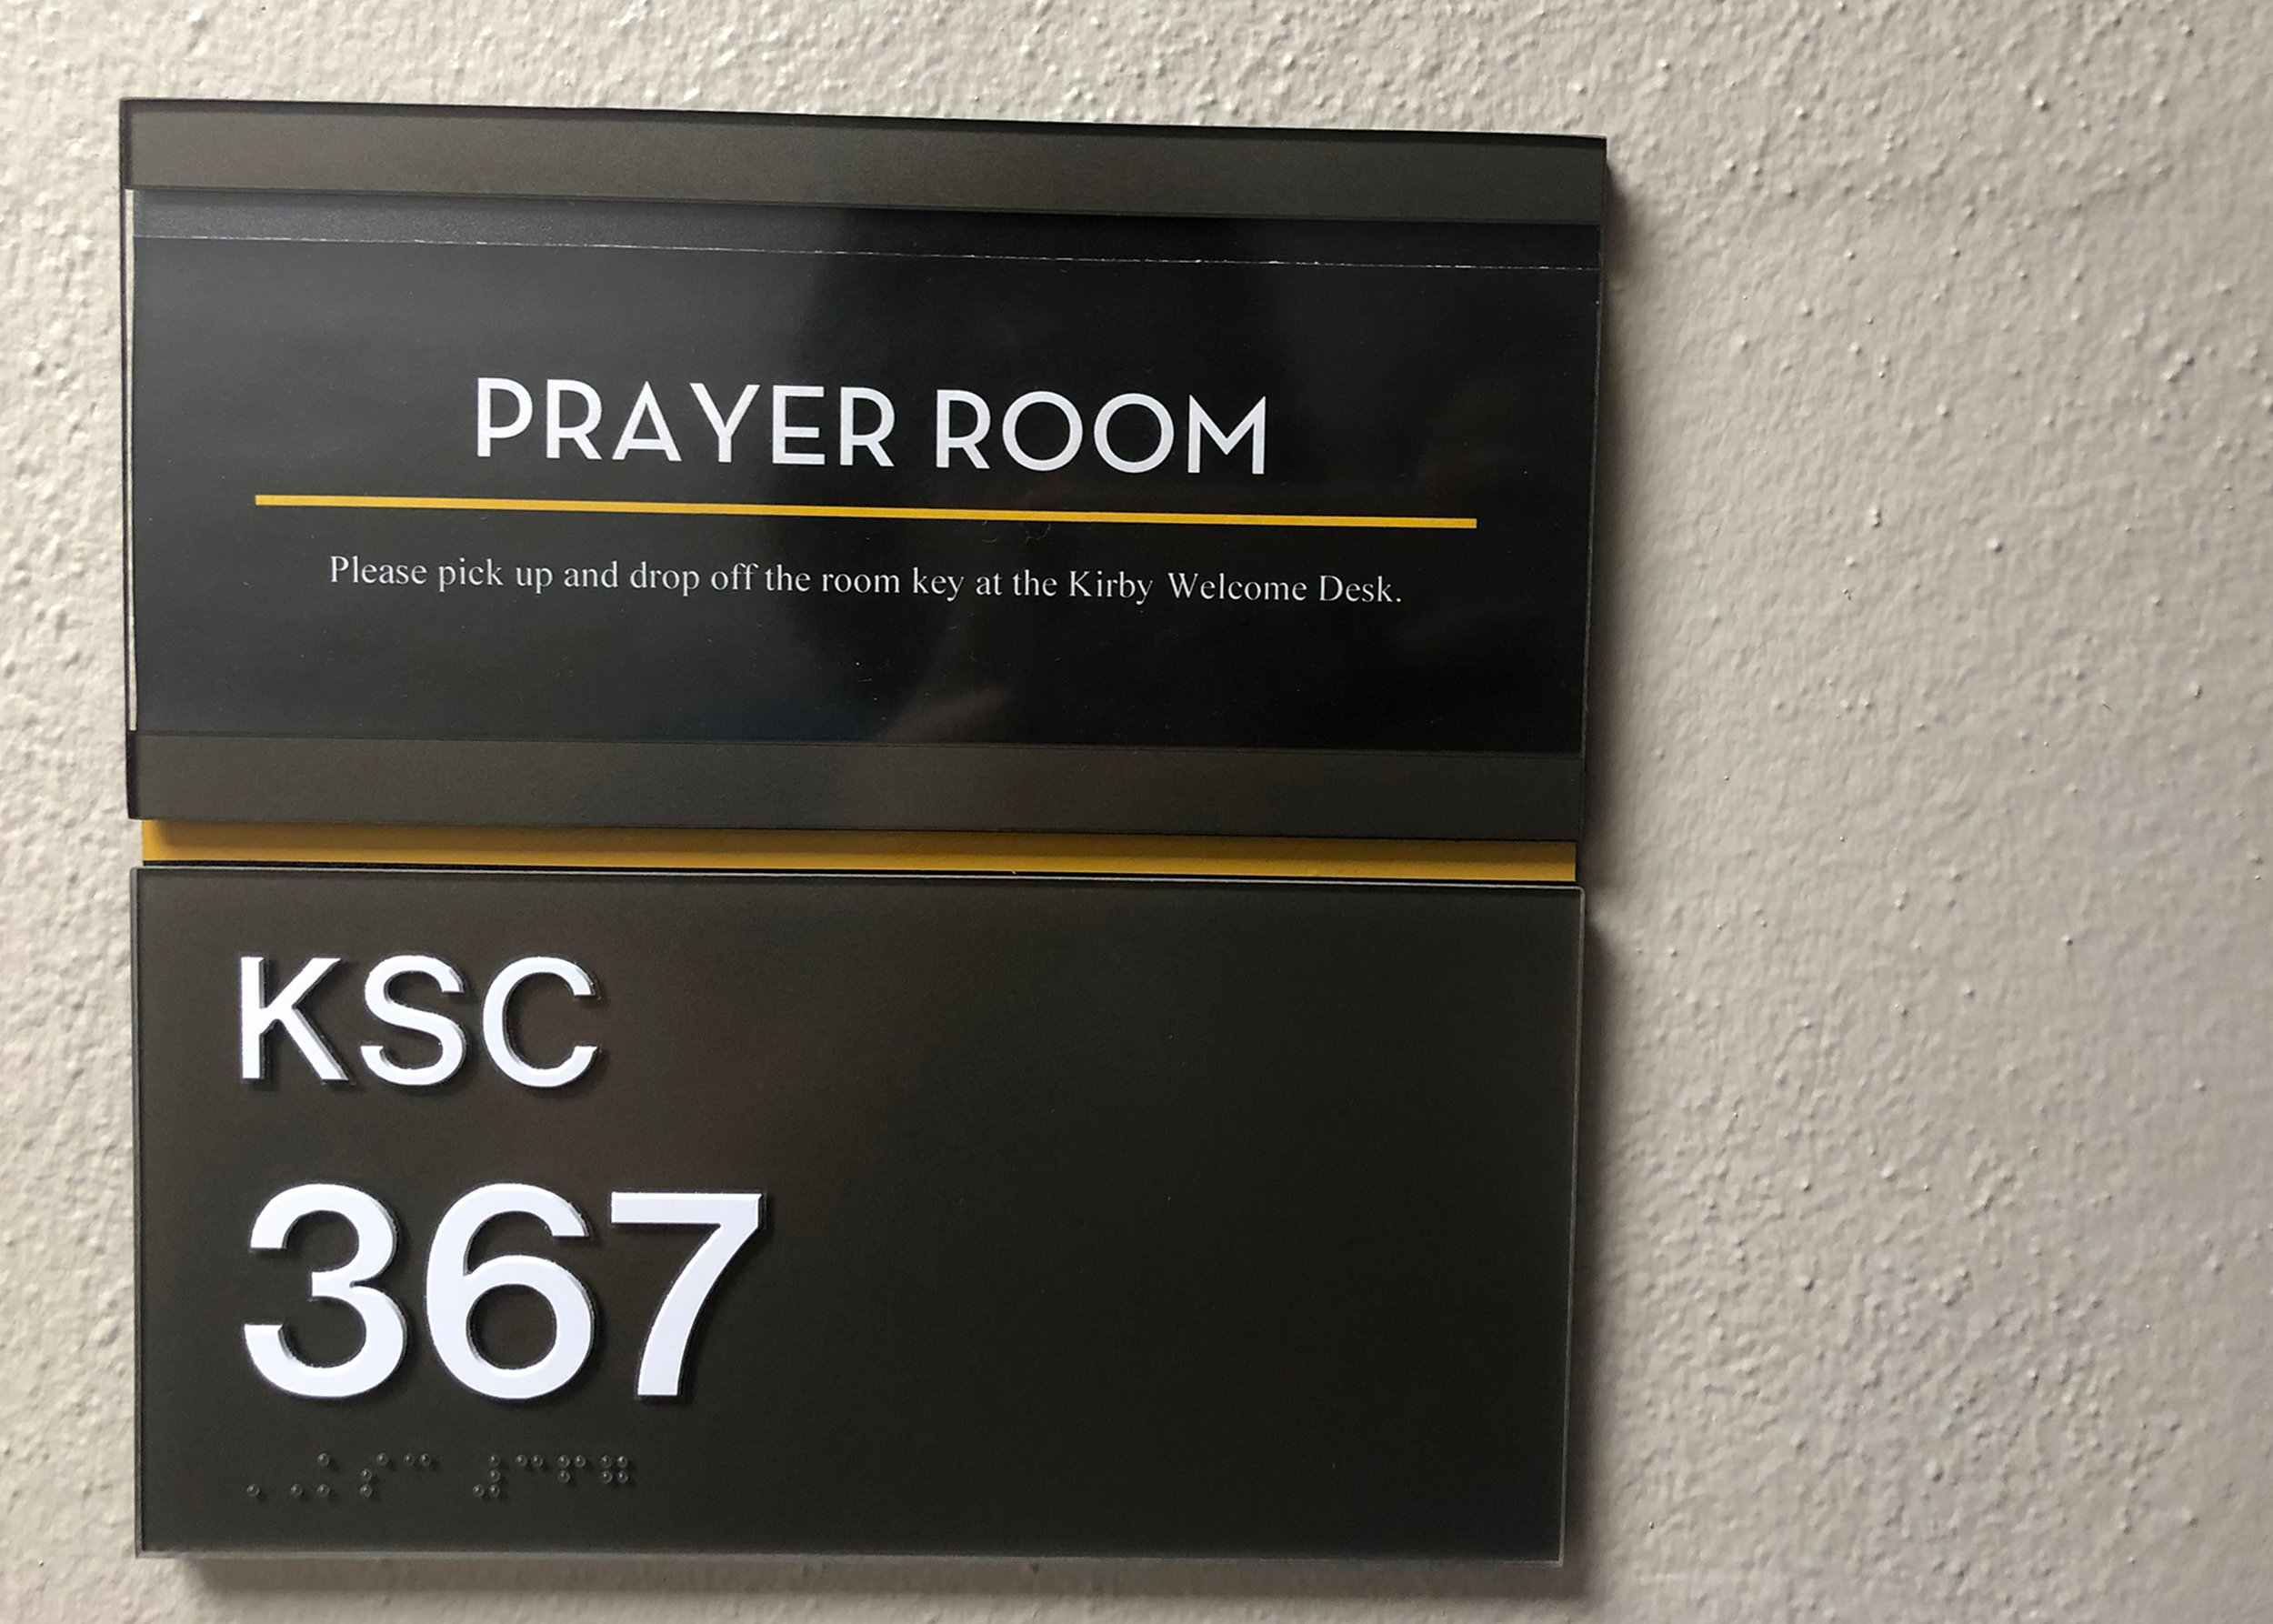 Prayer Room Label, Photo Courtesy of Madison Hunter